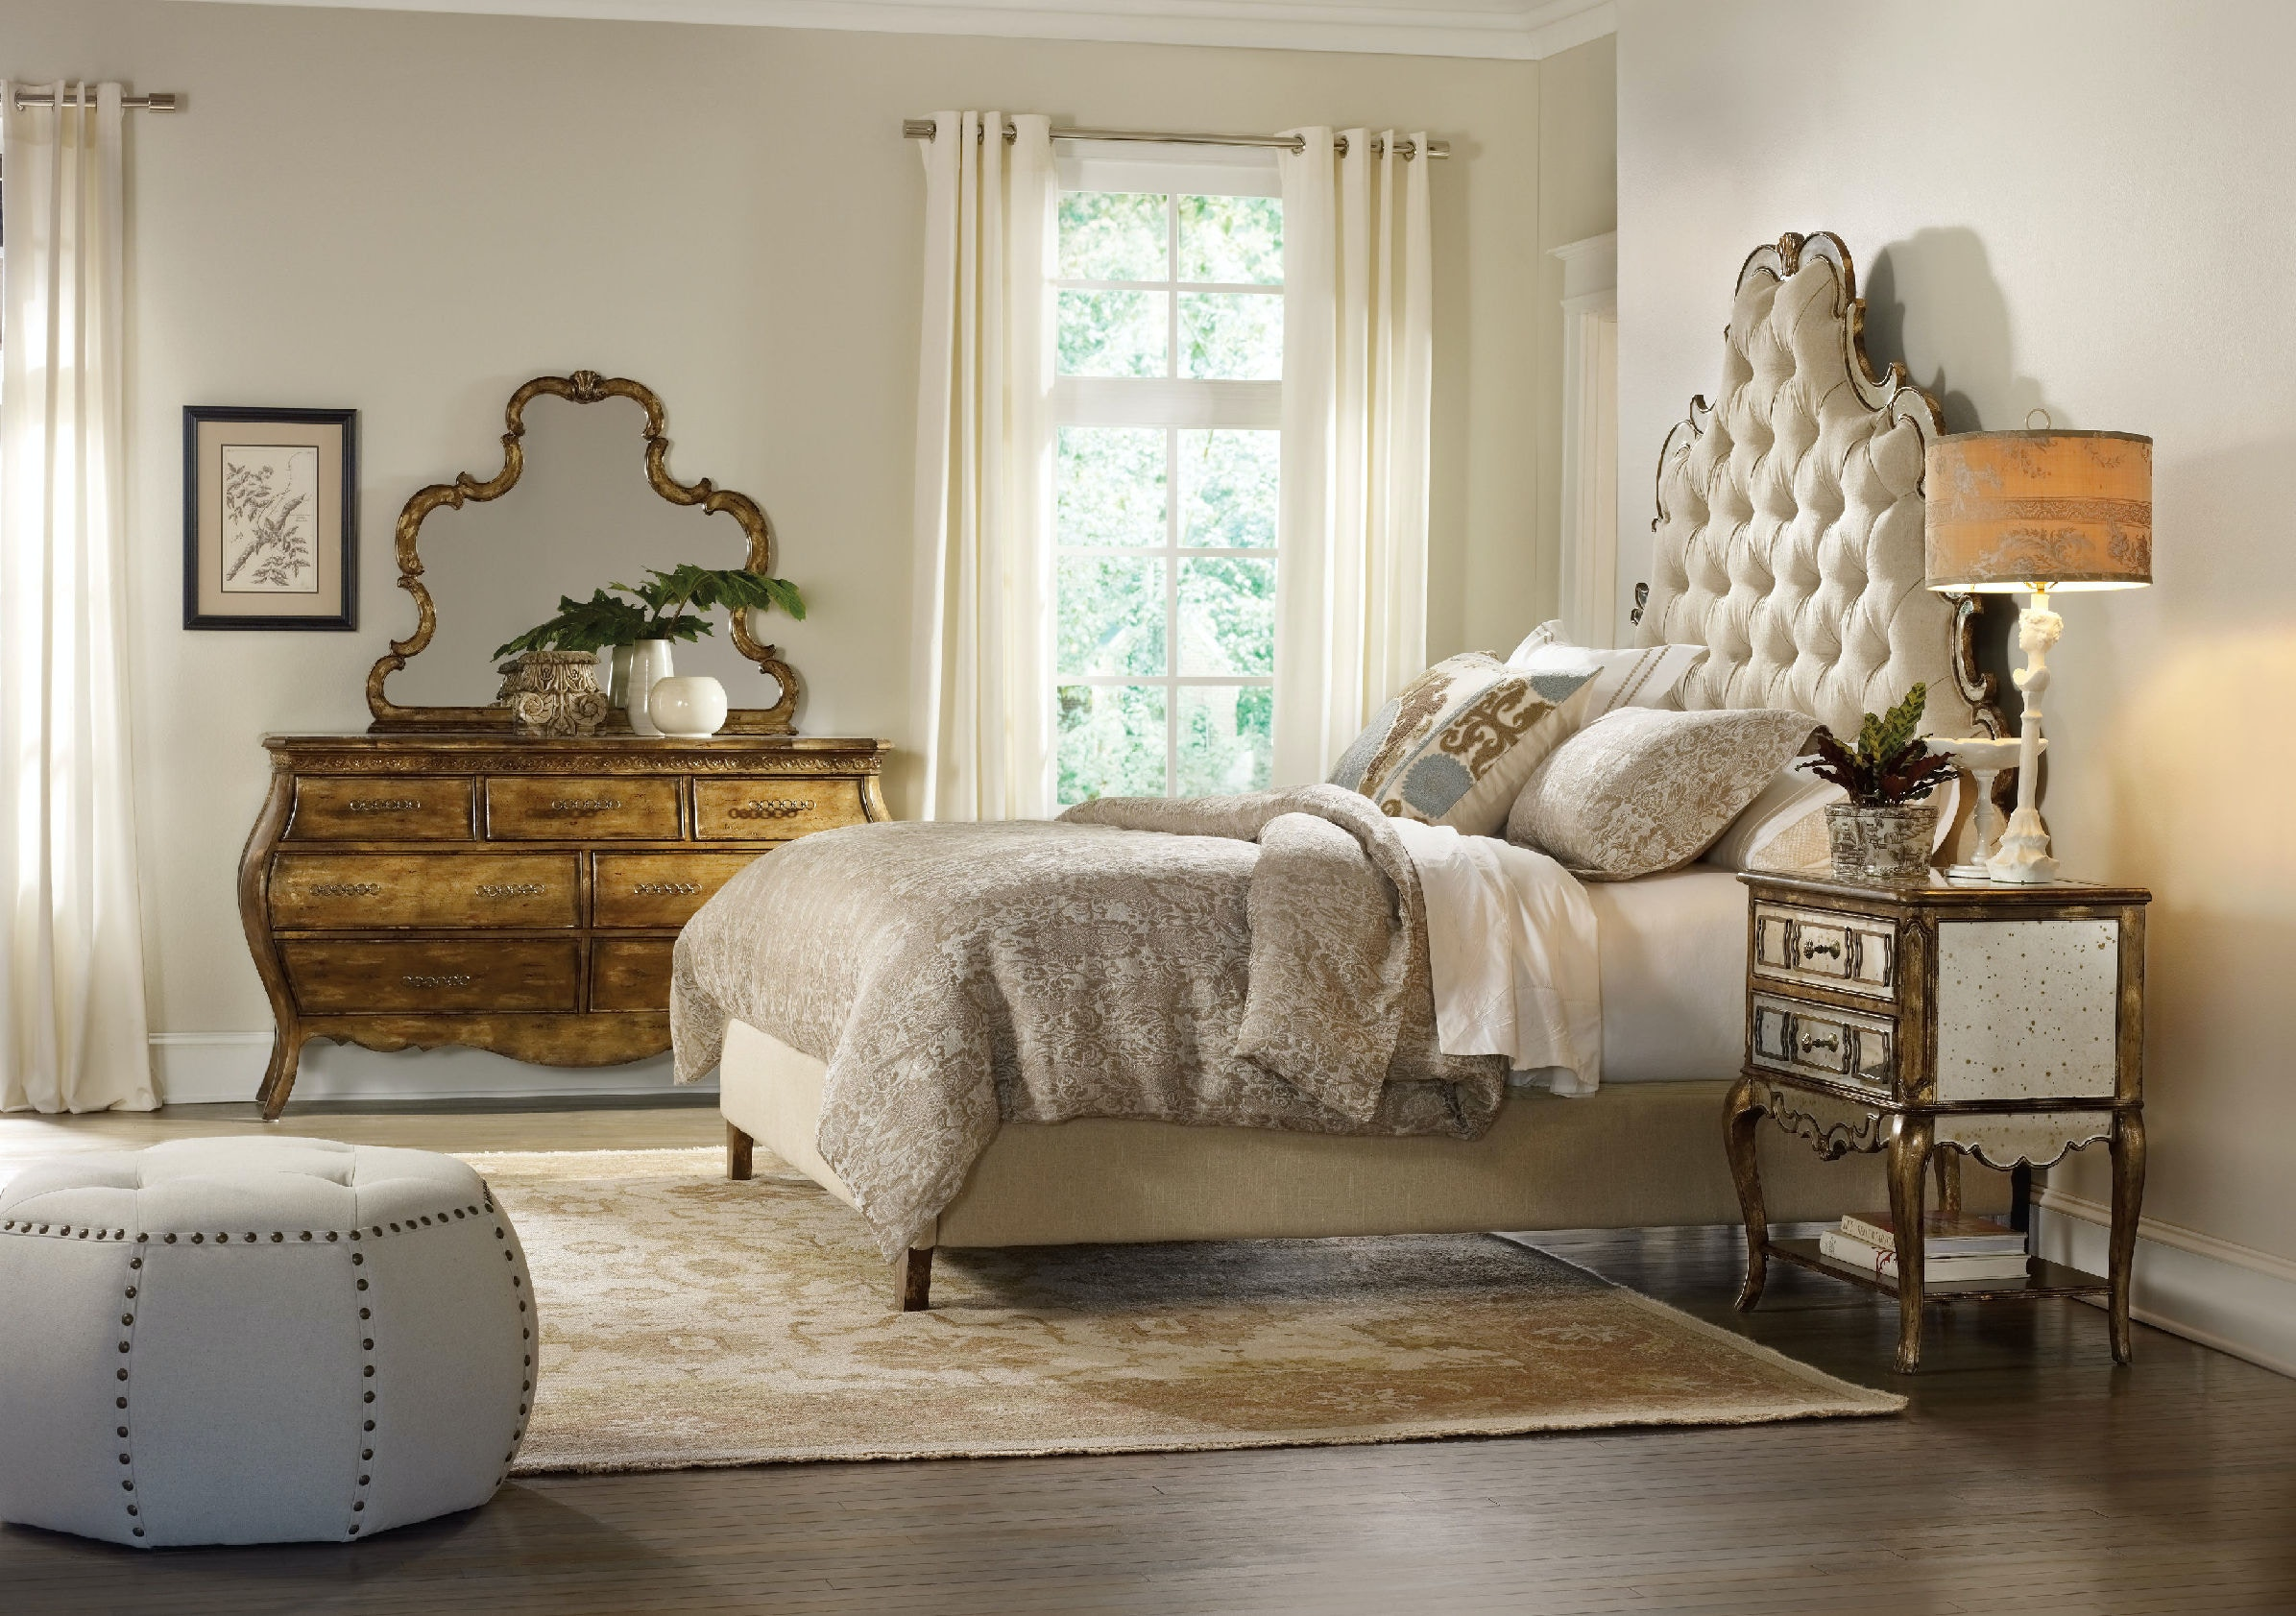 Hooker Furniture Sanctuary King Tufted Bed   Bling 3016 90865